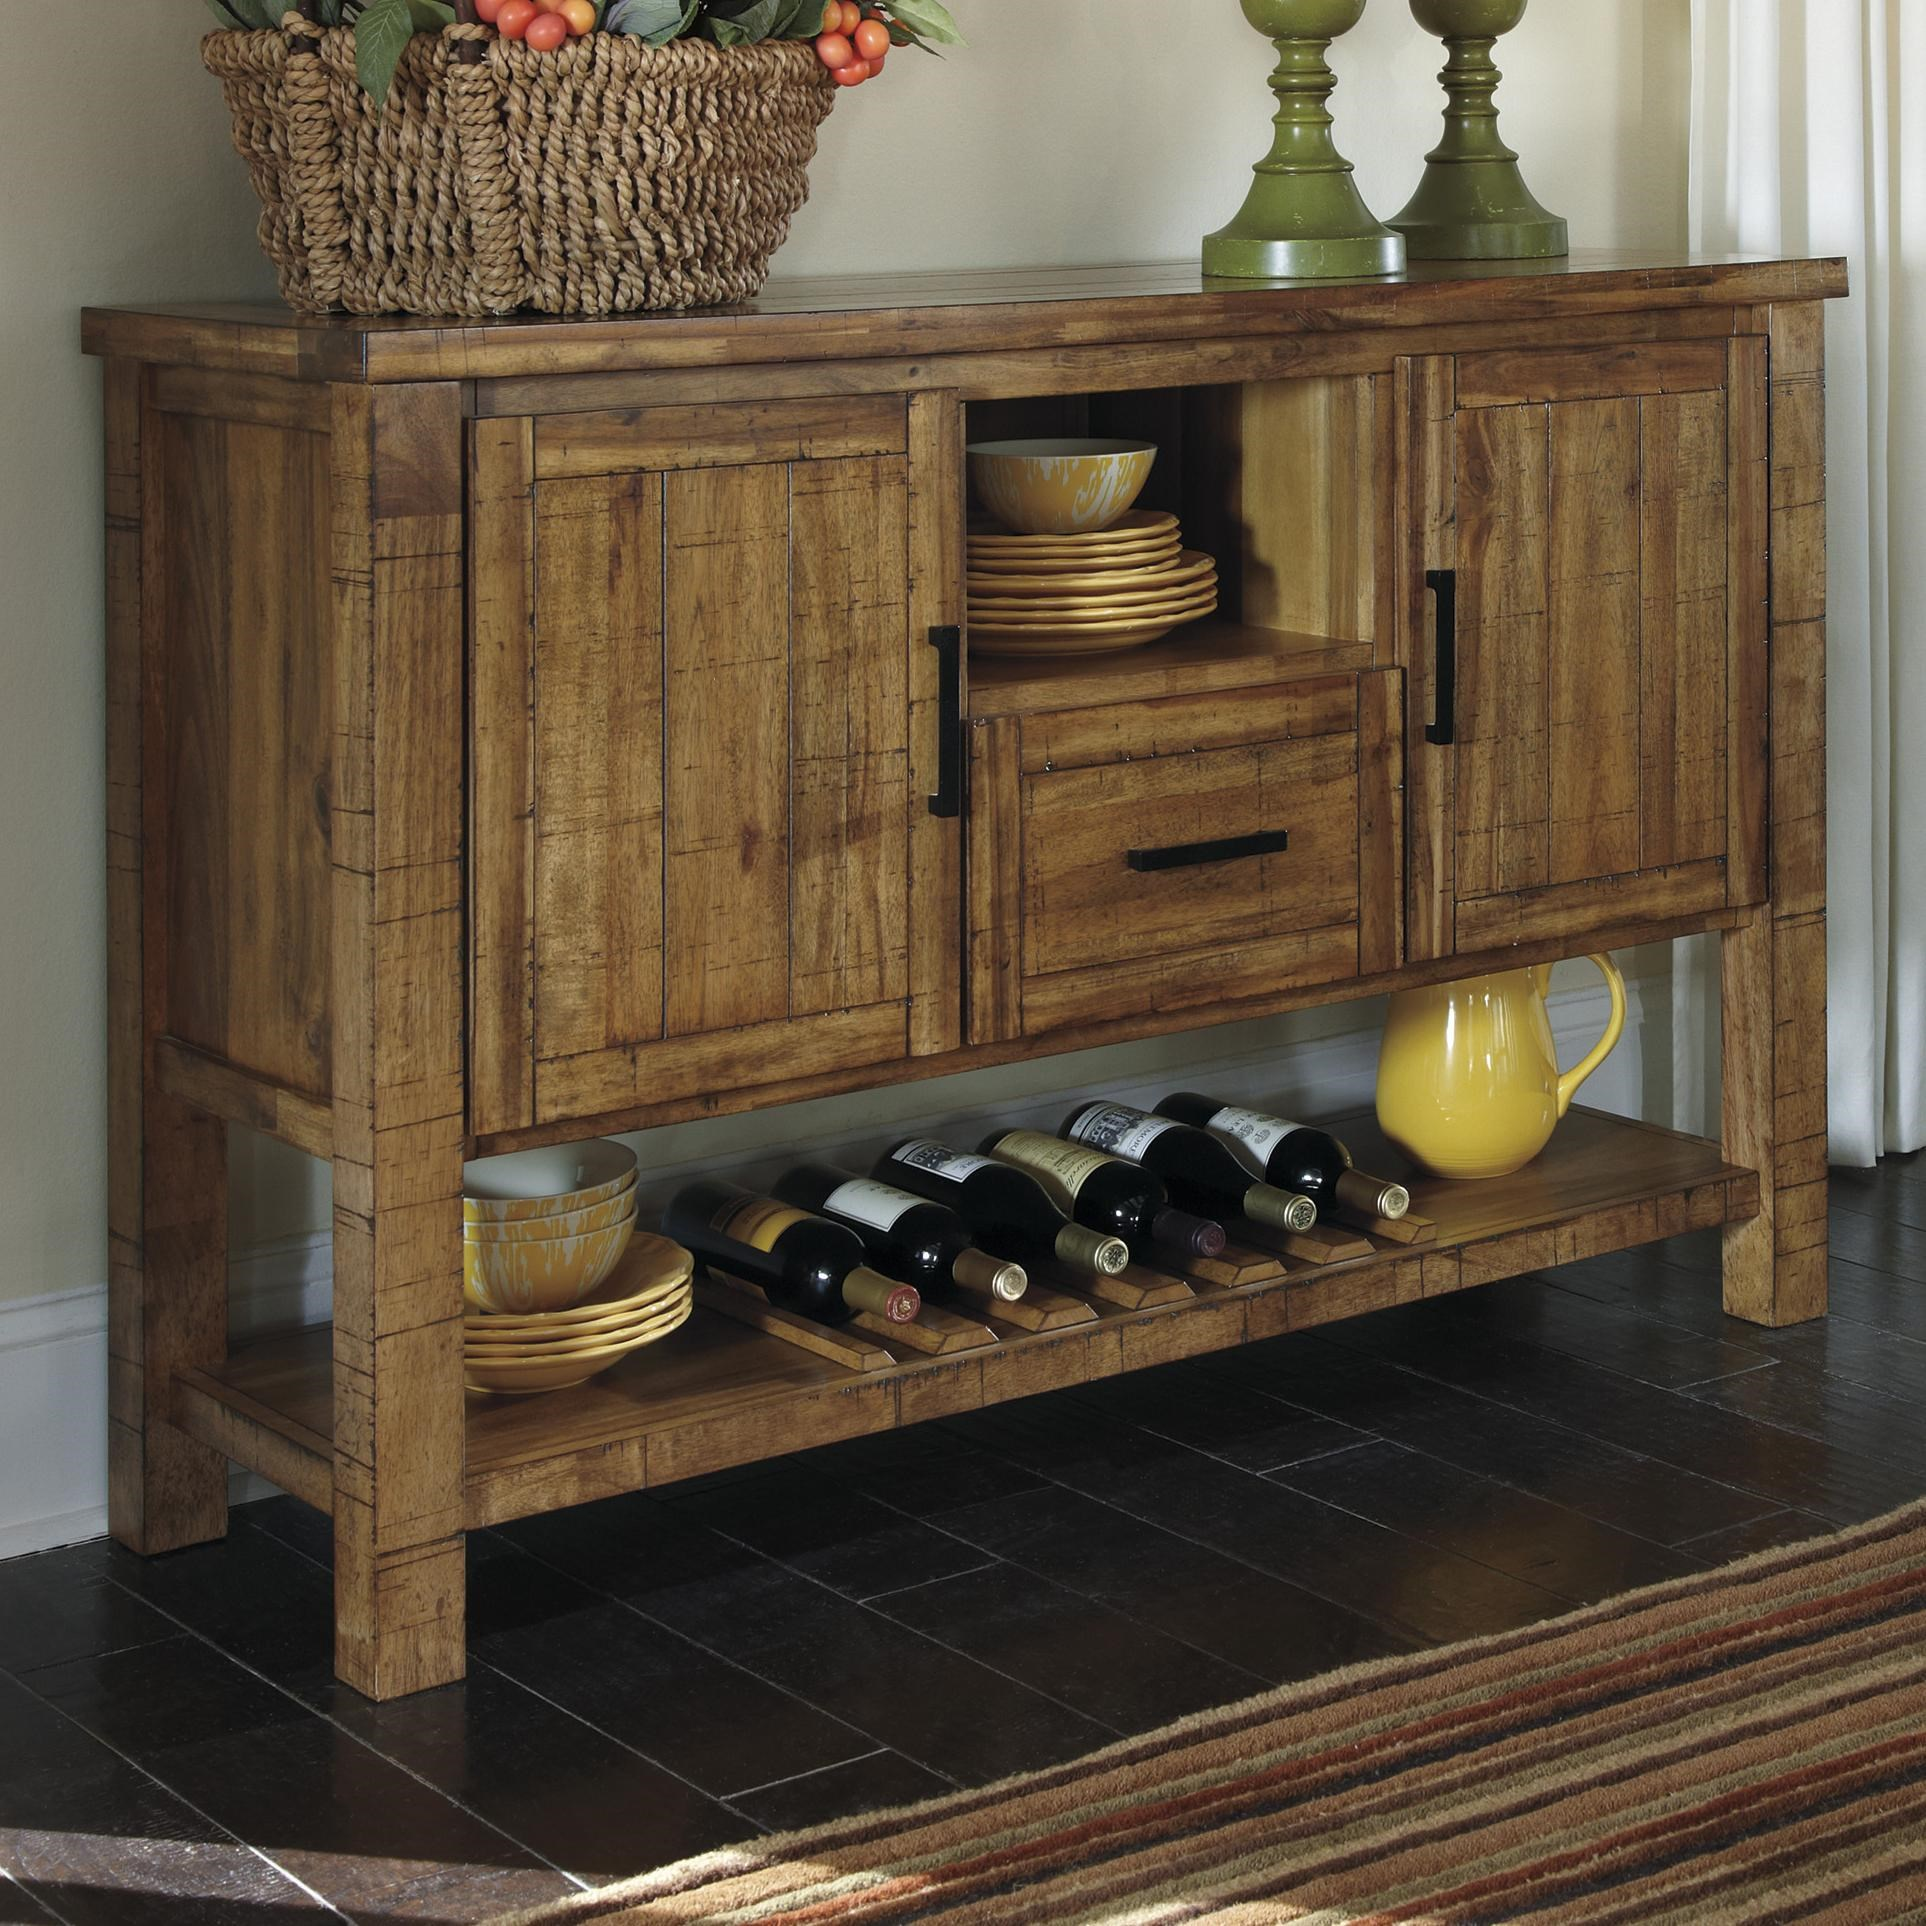 Beautiful Signature Design By Ashley Krinden Rustic Dining Room Server With Wine Rack